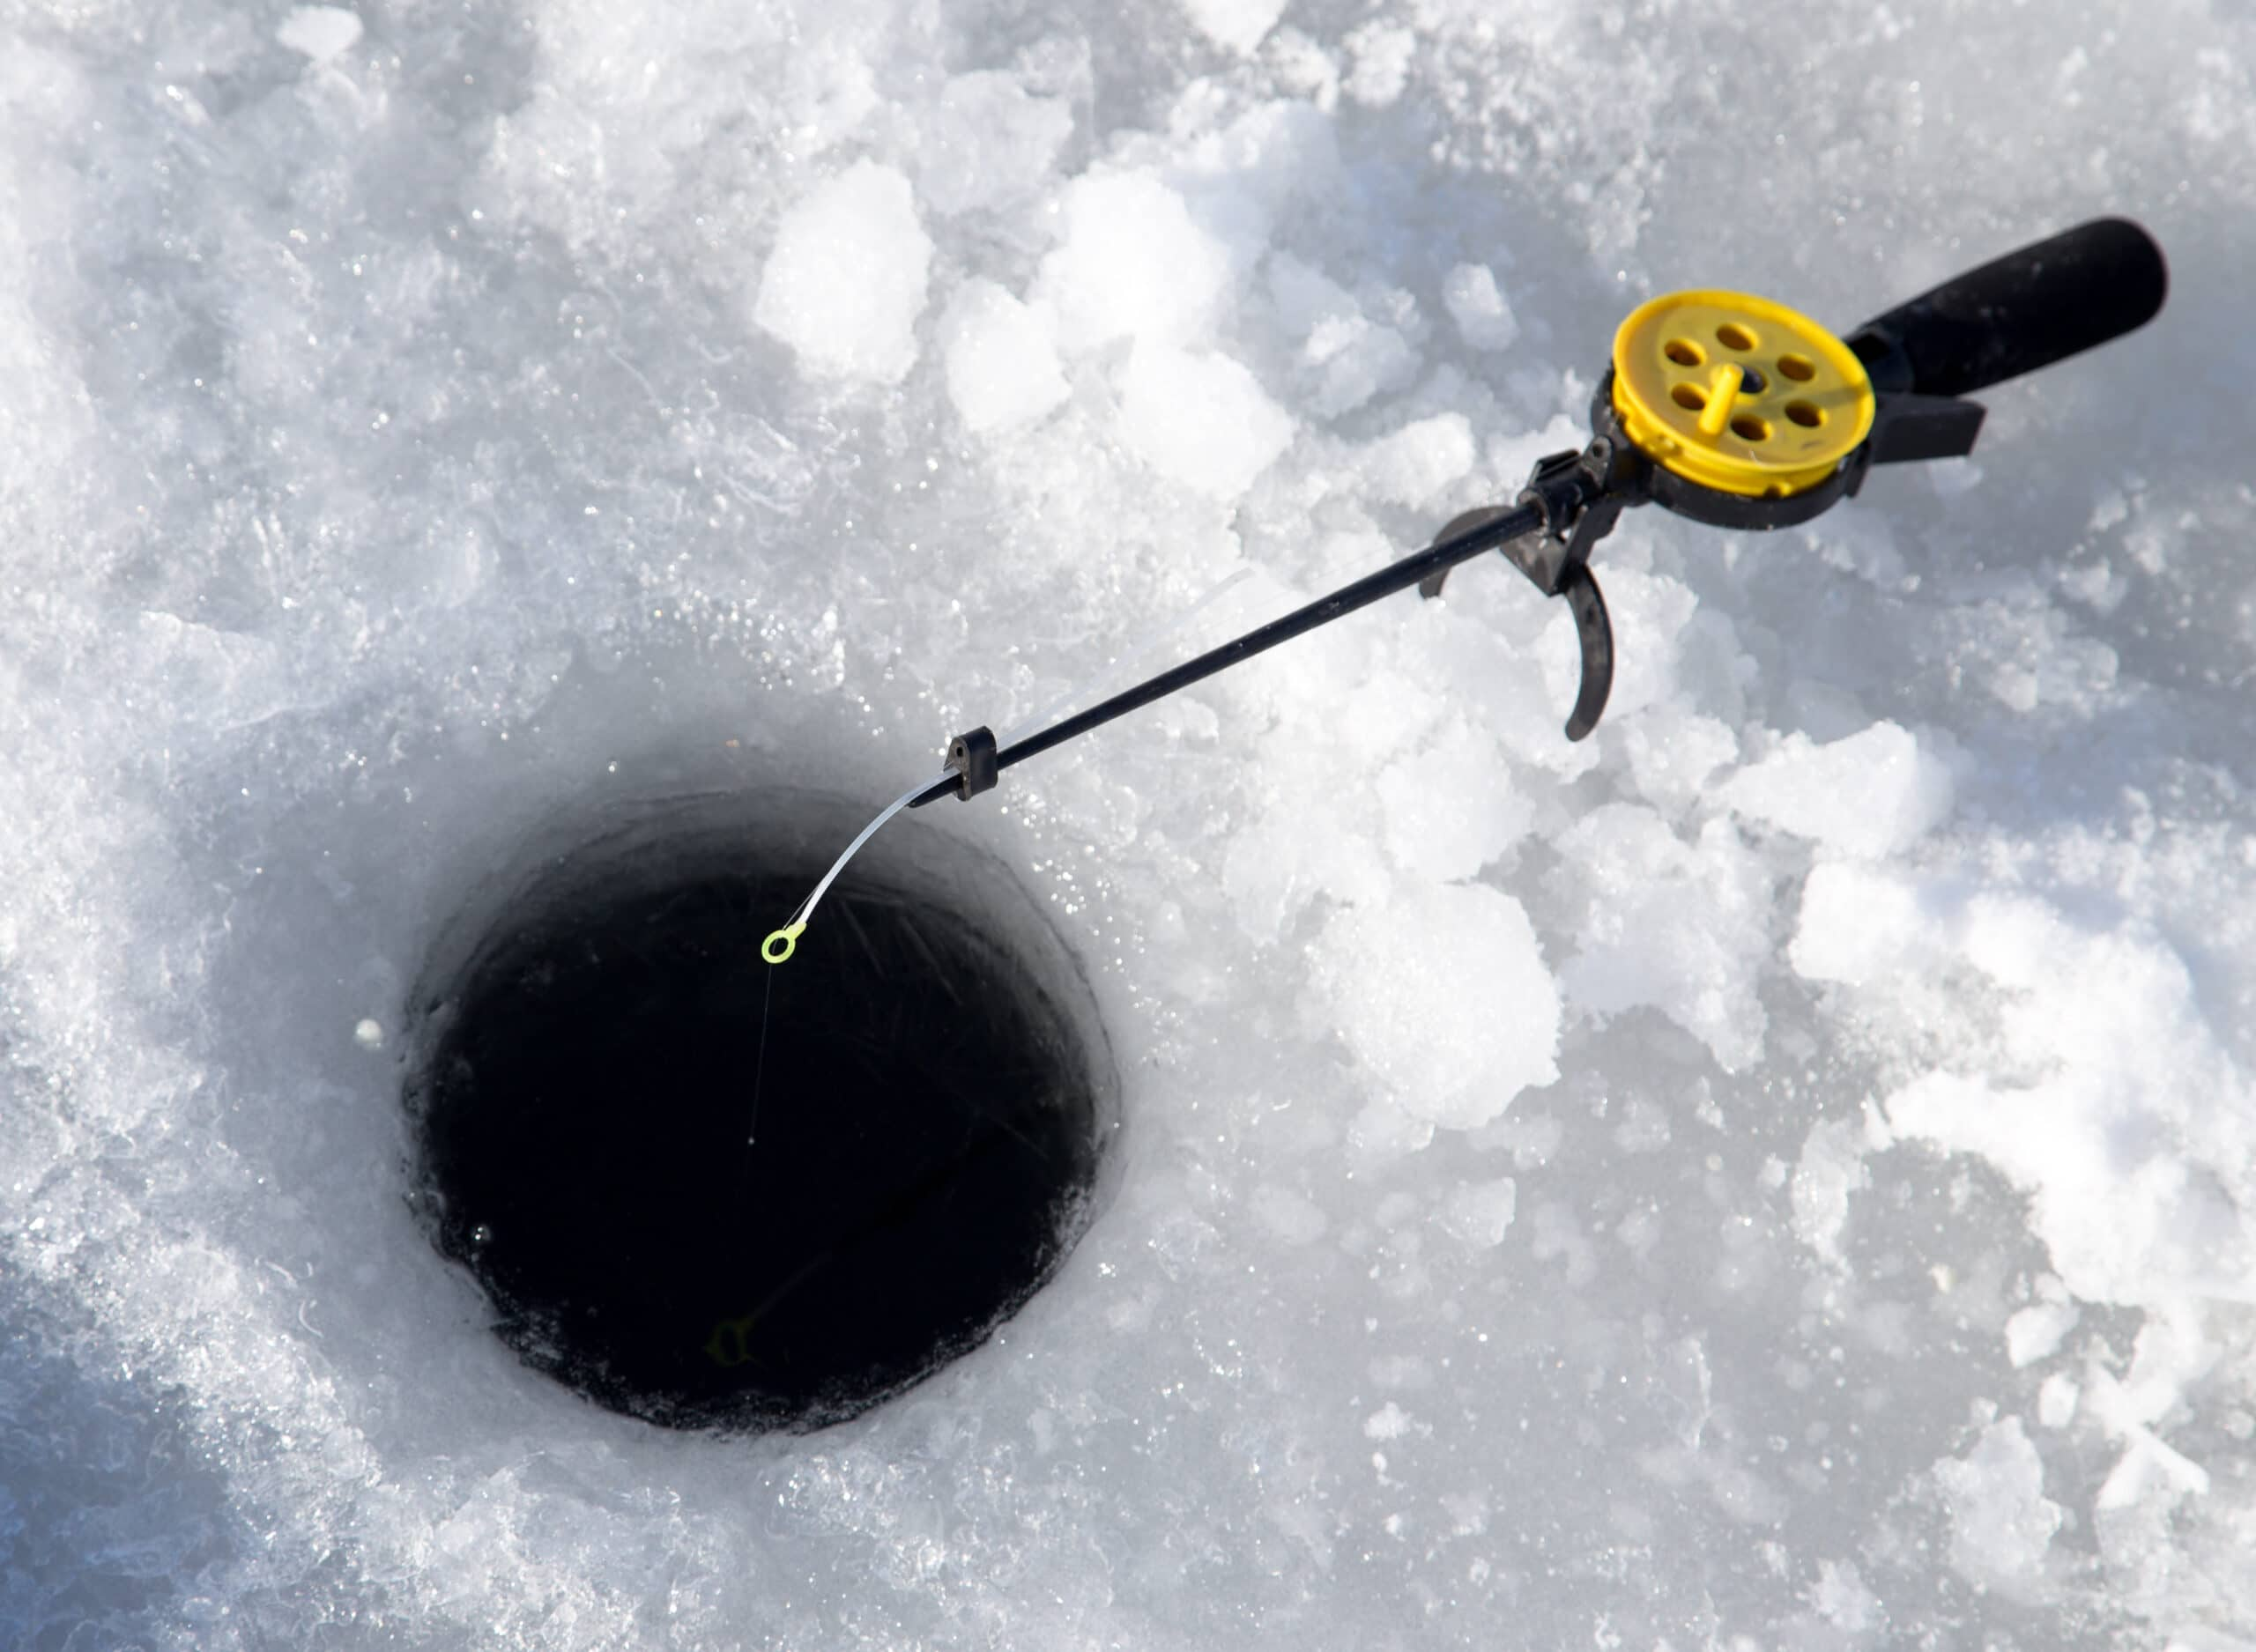 Ice fishing rod over an open ice hole.